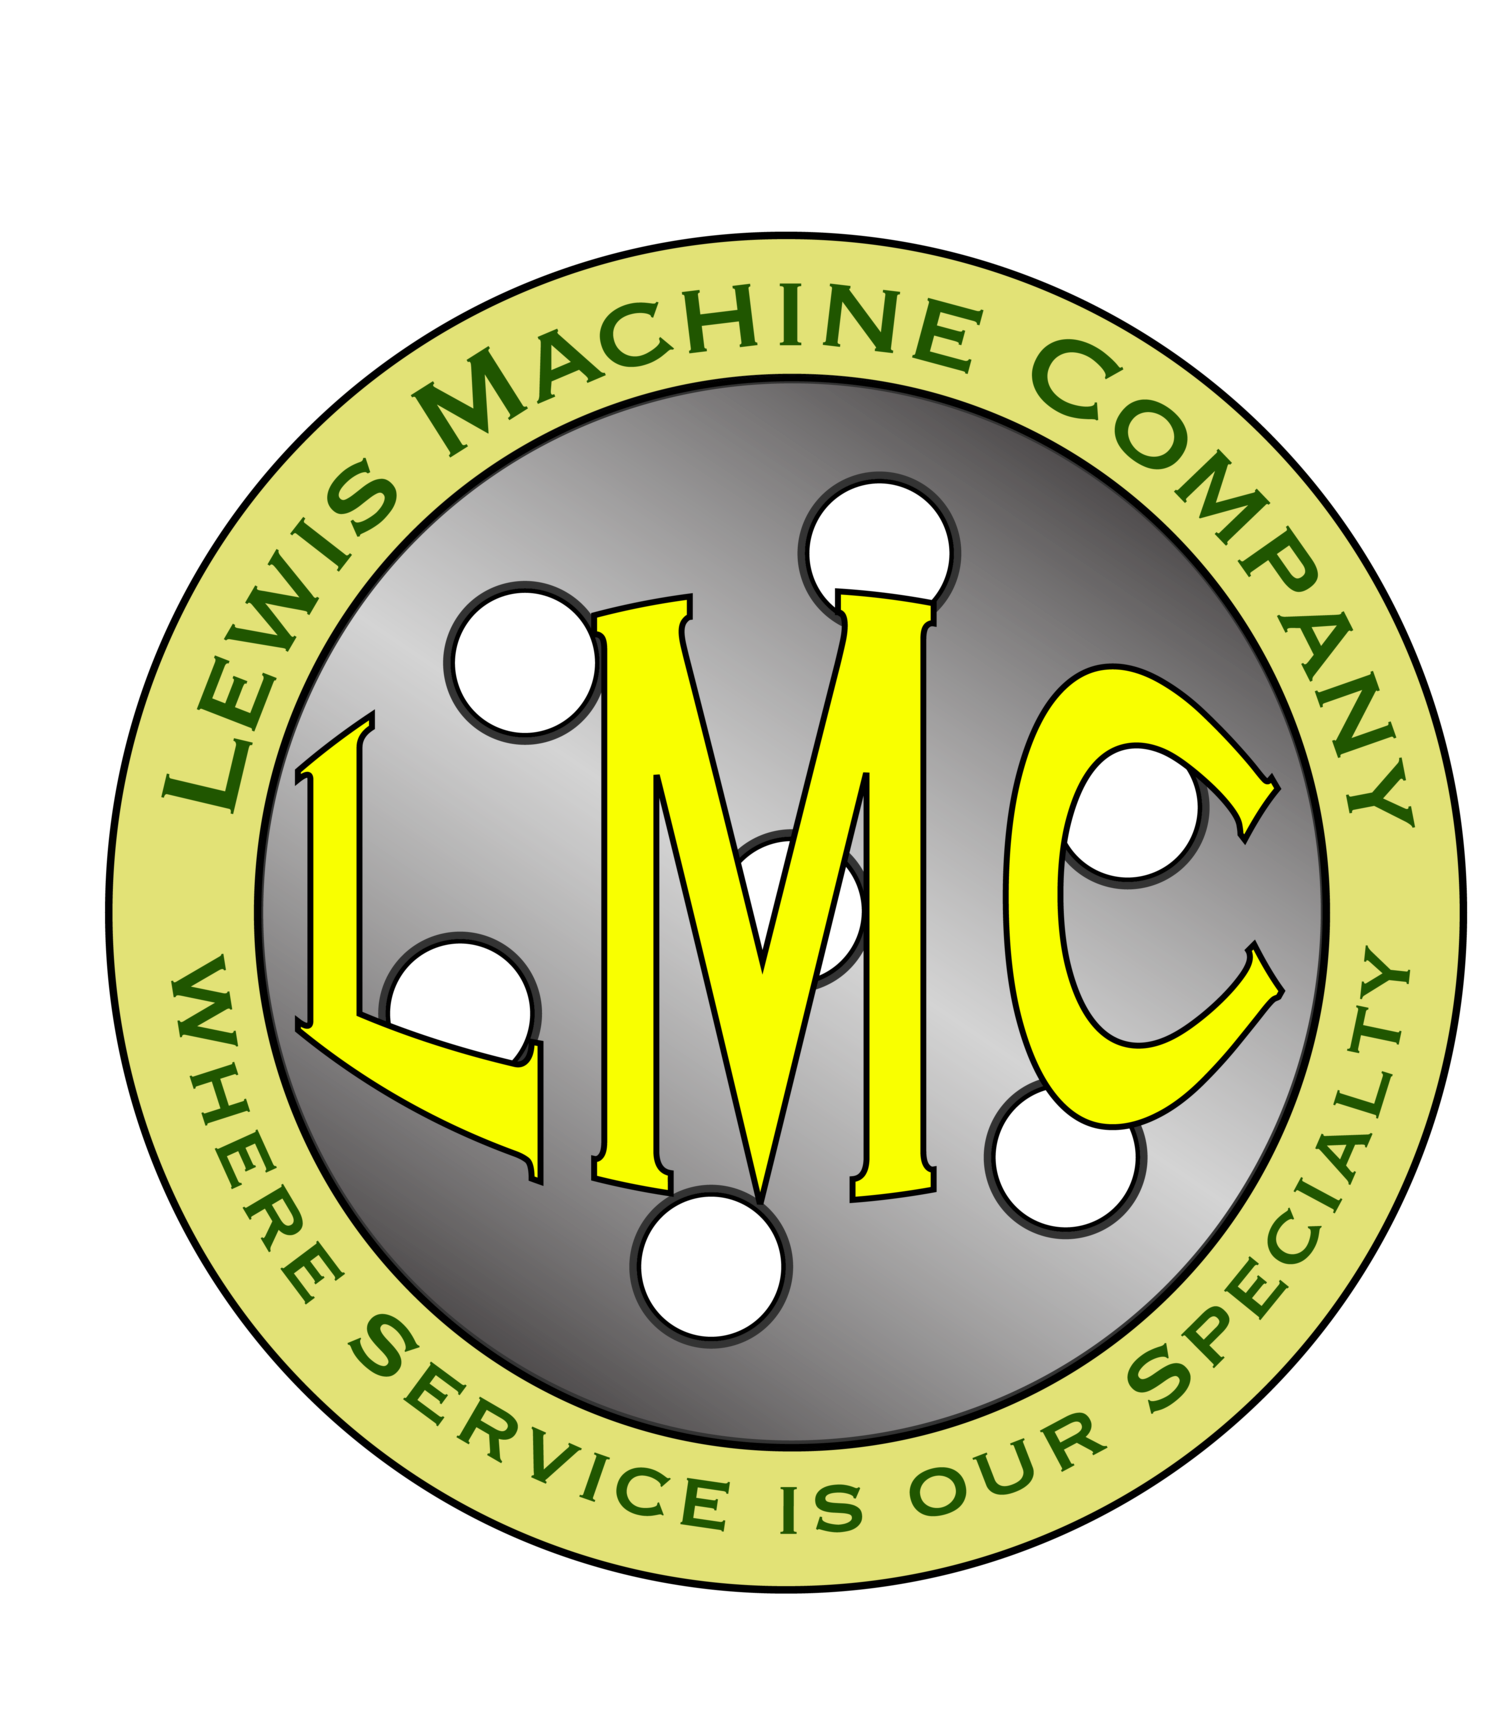 Lewis Machine